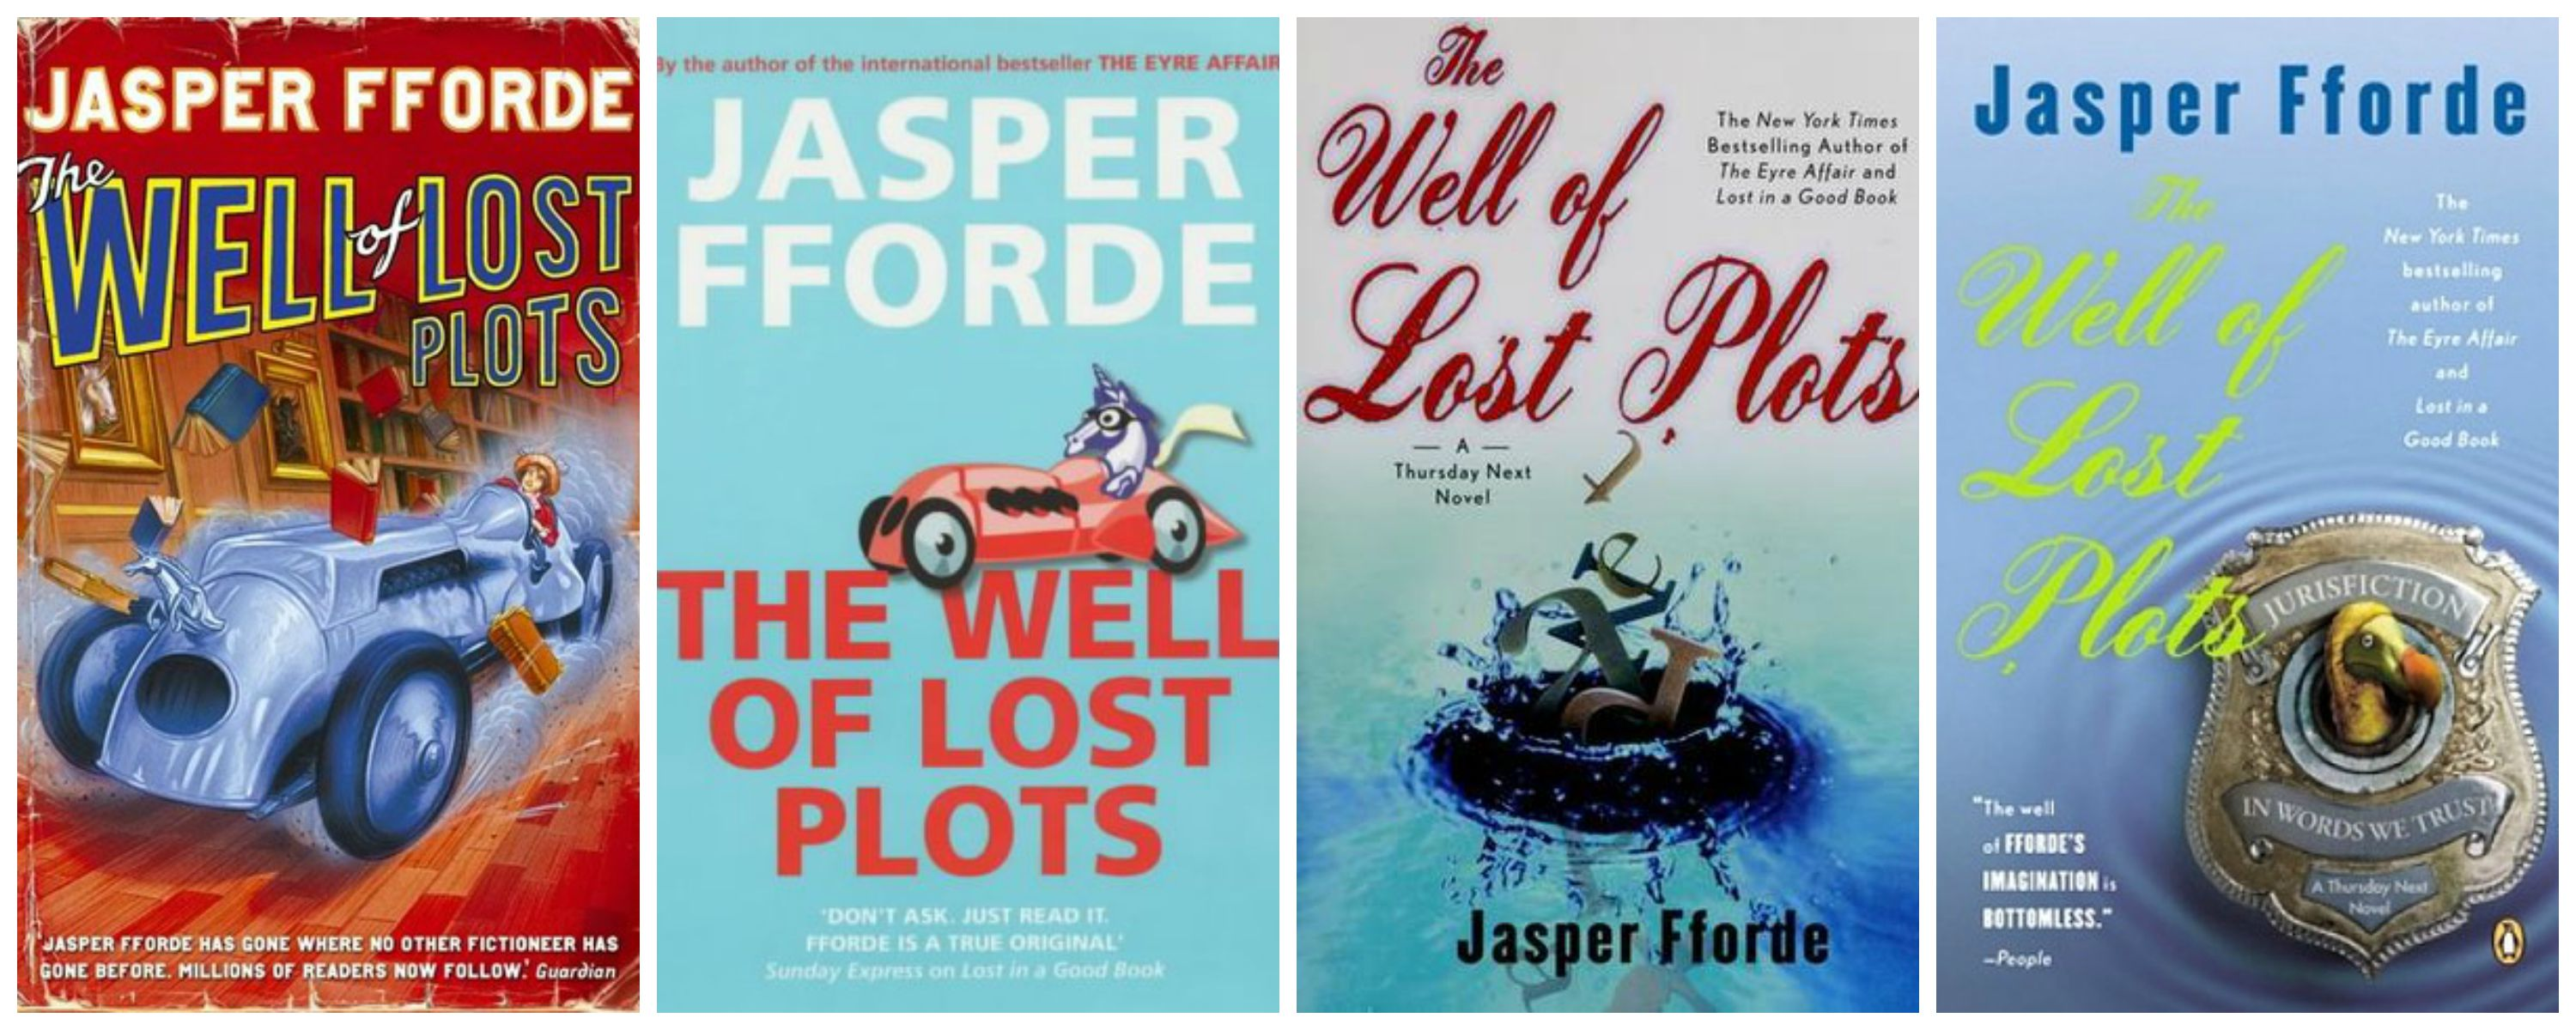 The Well of Lost Plots UK and US covers